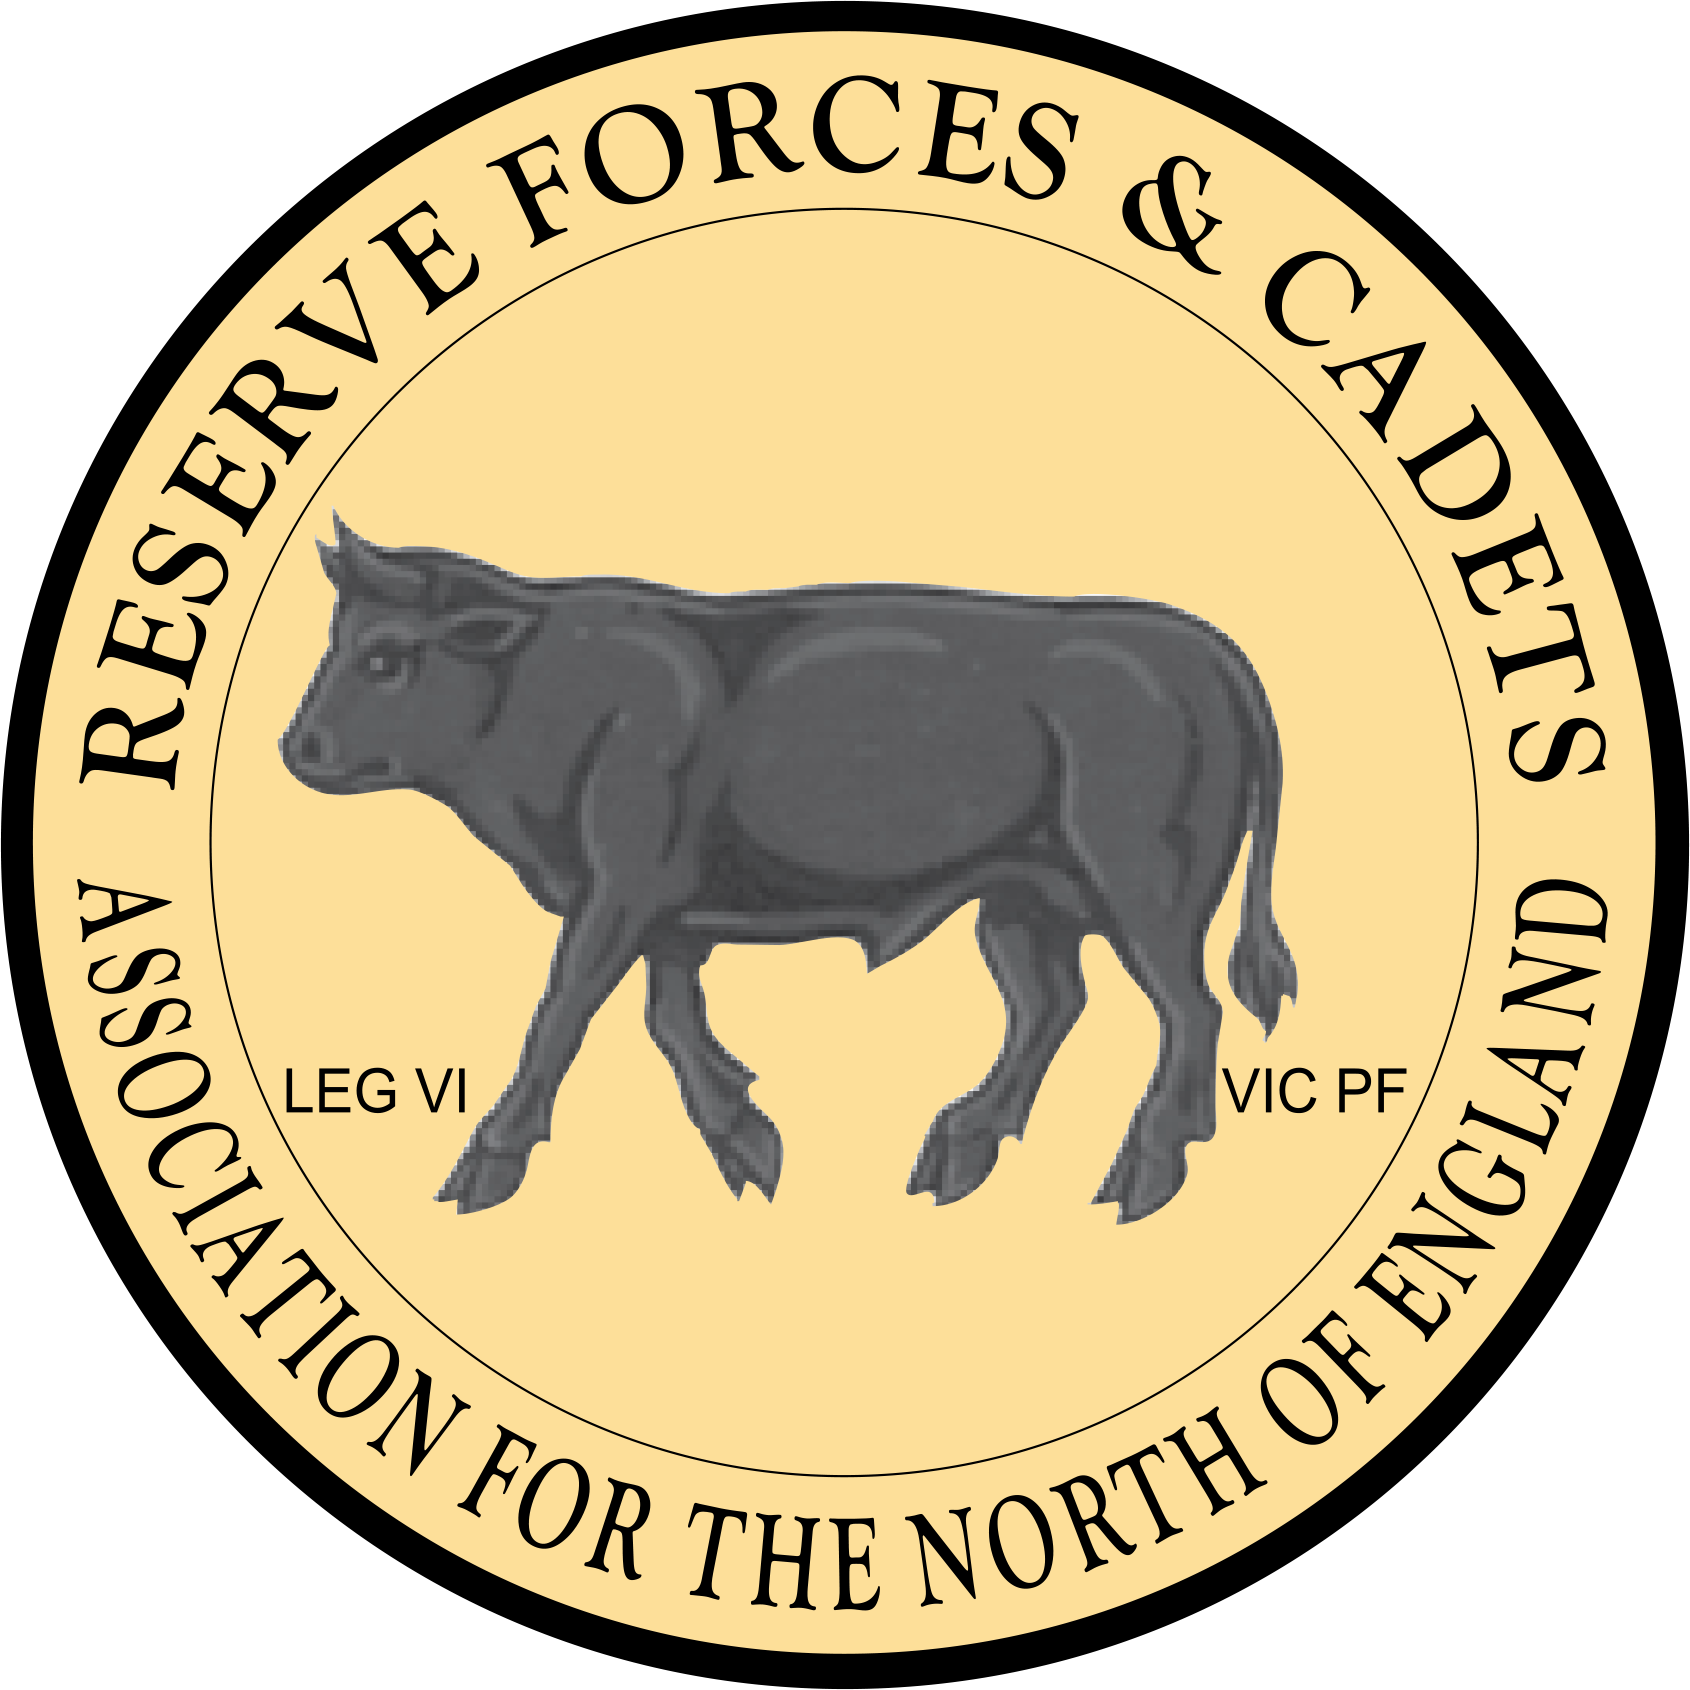 Reserve Forces & Cadets Association for the North of England